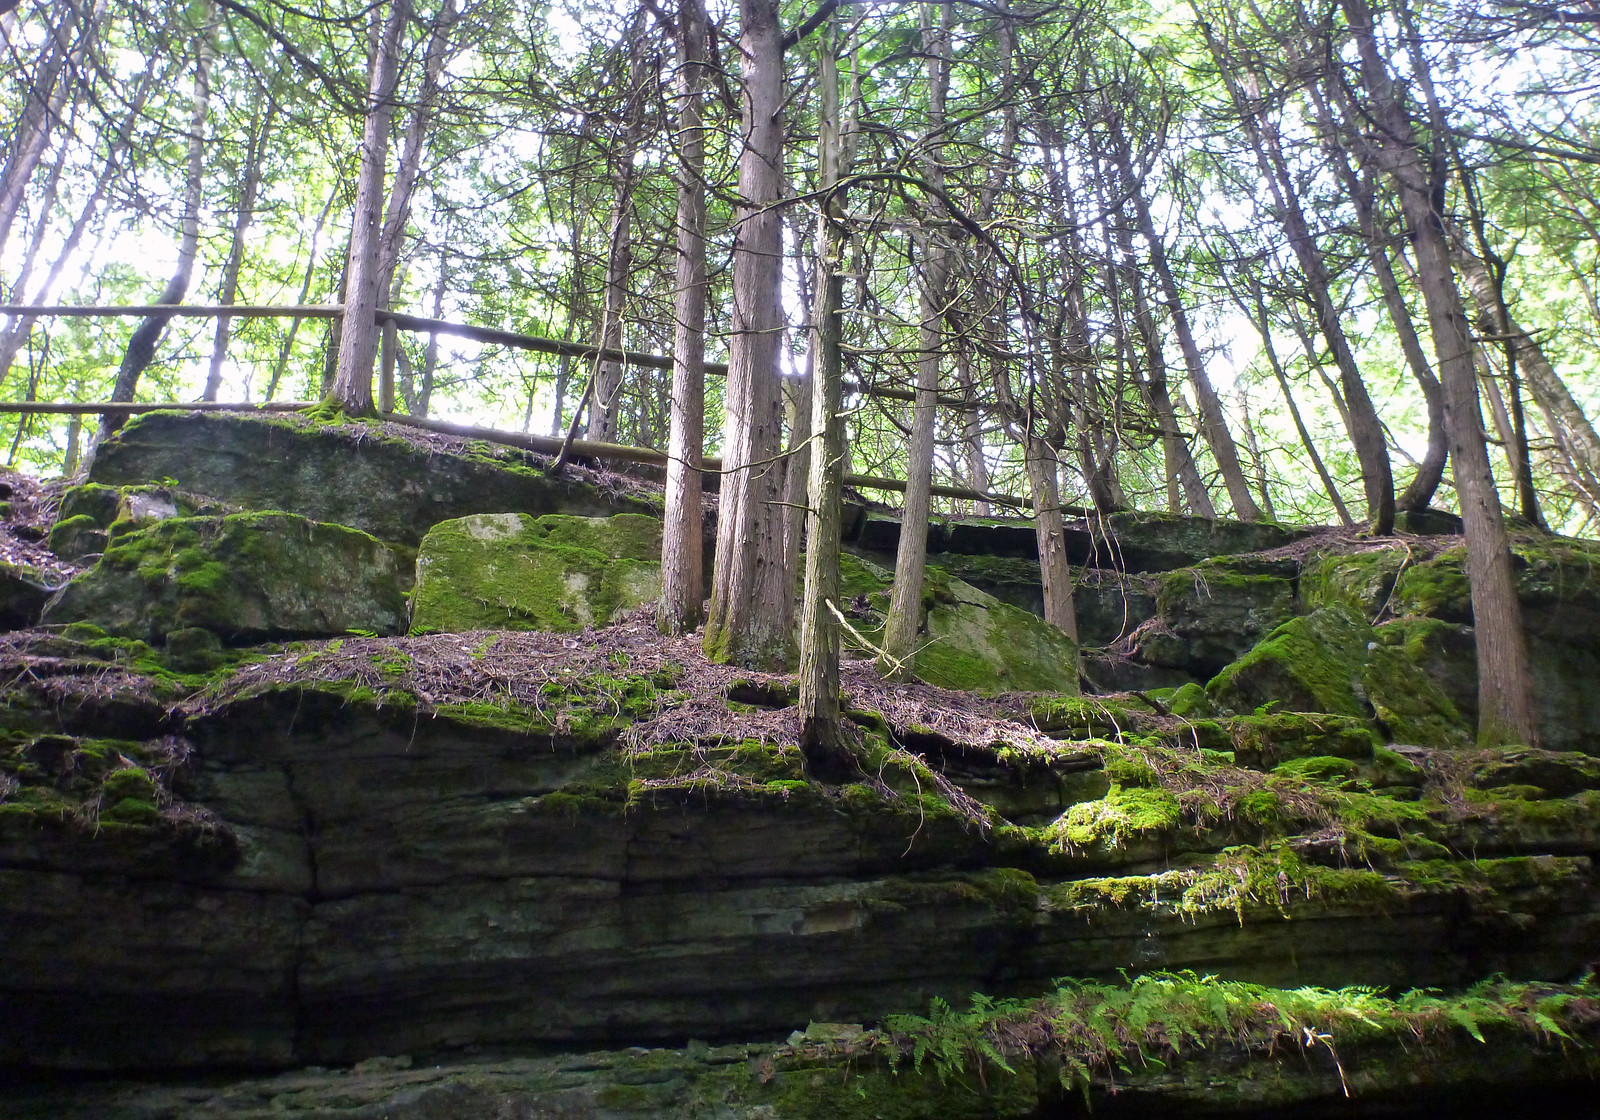 Hiking trails in Napanee and hiking trails near Kingston Ontario